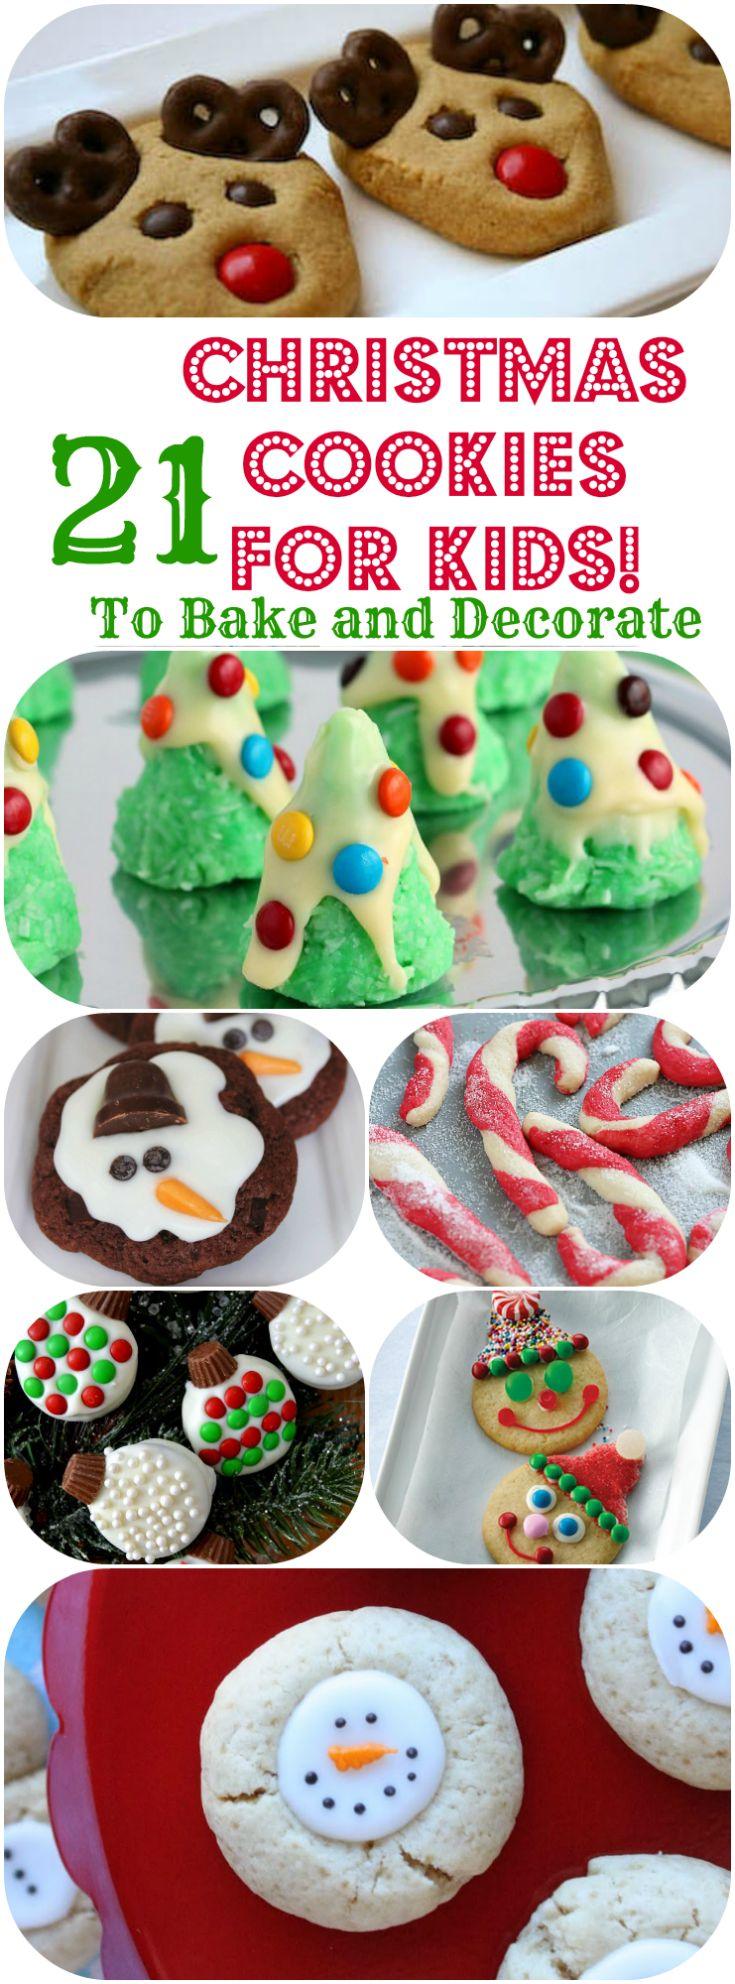 21 Christmas cookies for kids to bake and decorate.